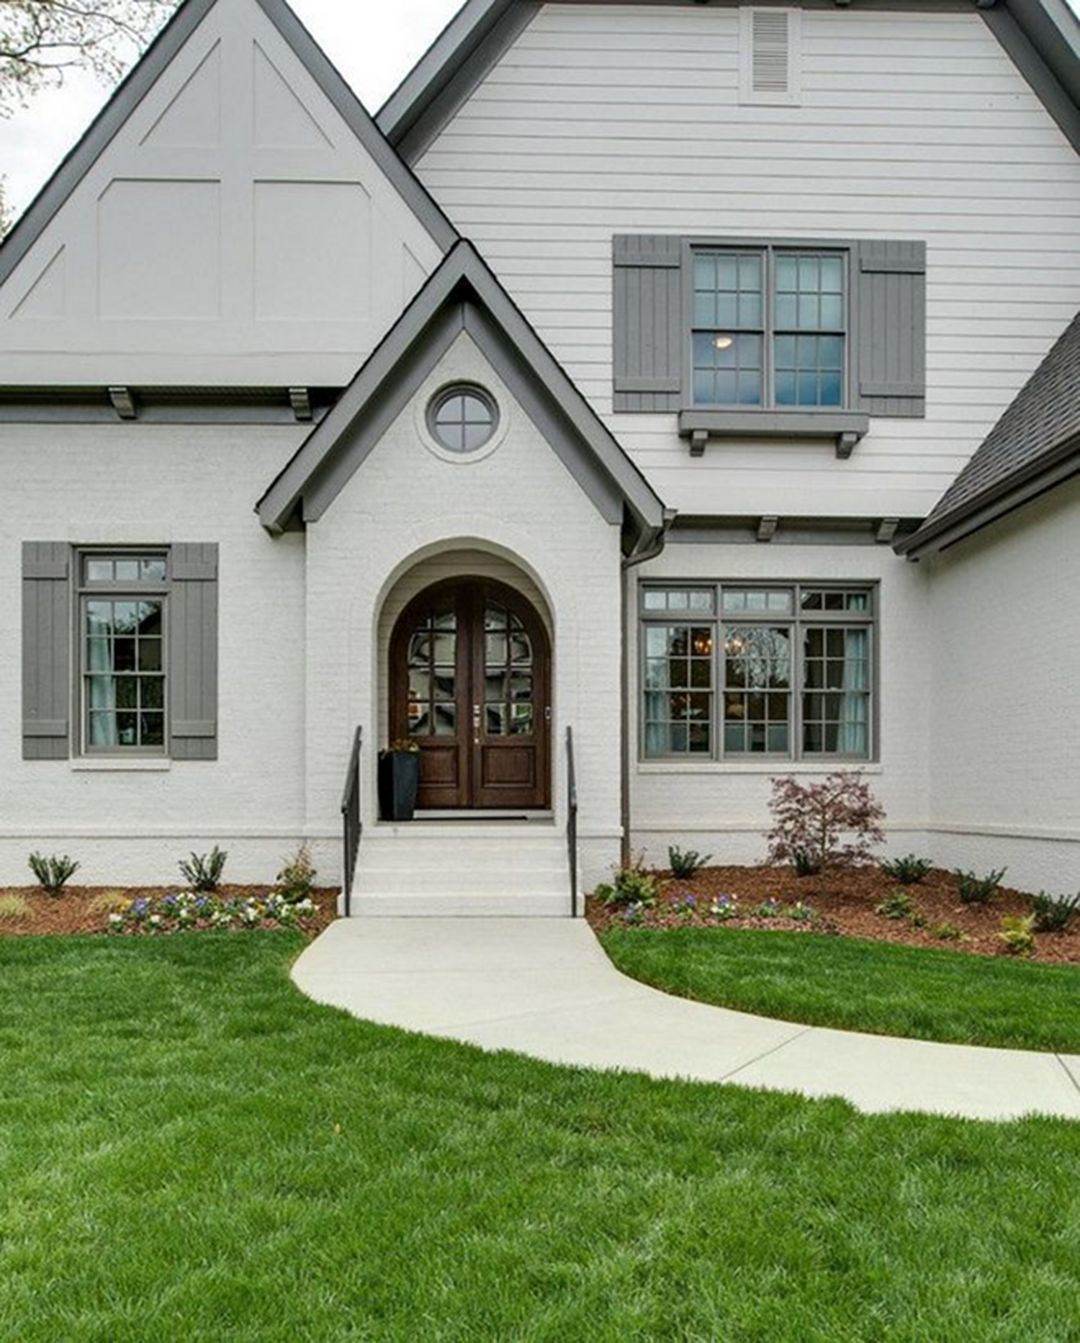 10+ Best Exterior Paint Color Combinations And Types for Your Home #greyexteriorhousecolors